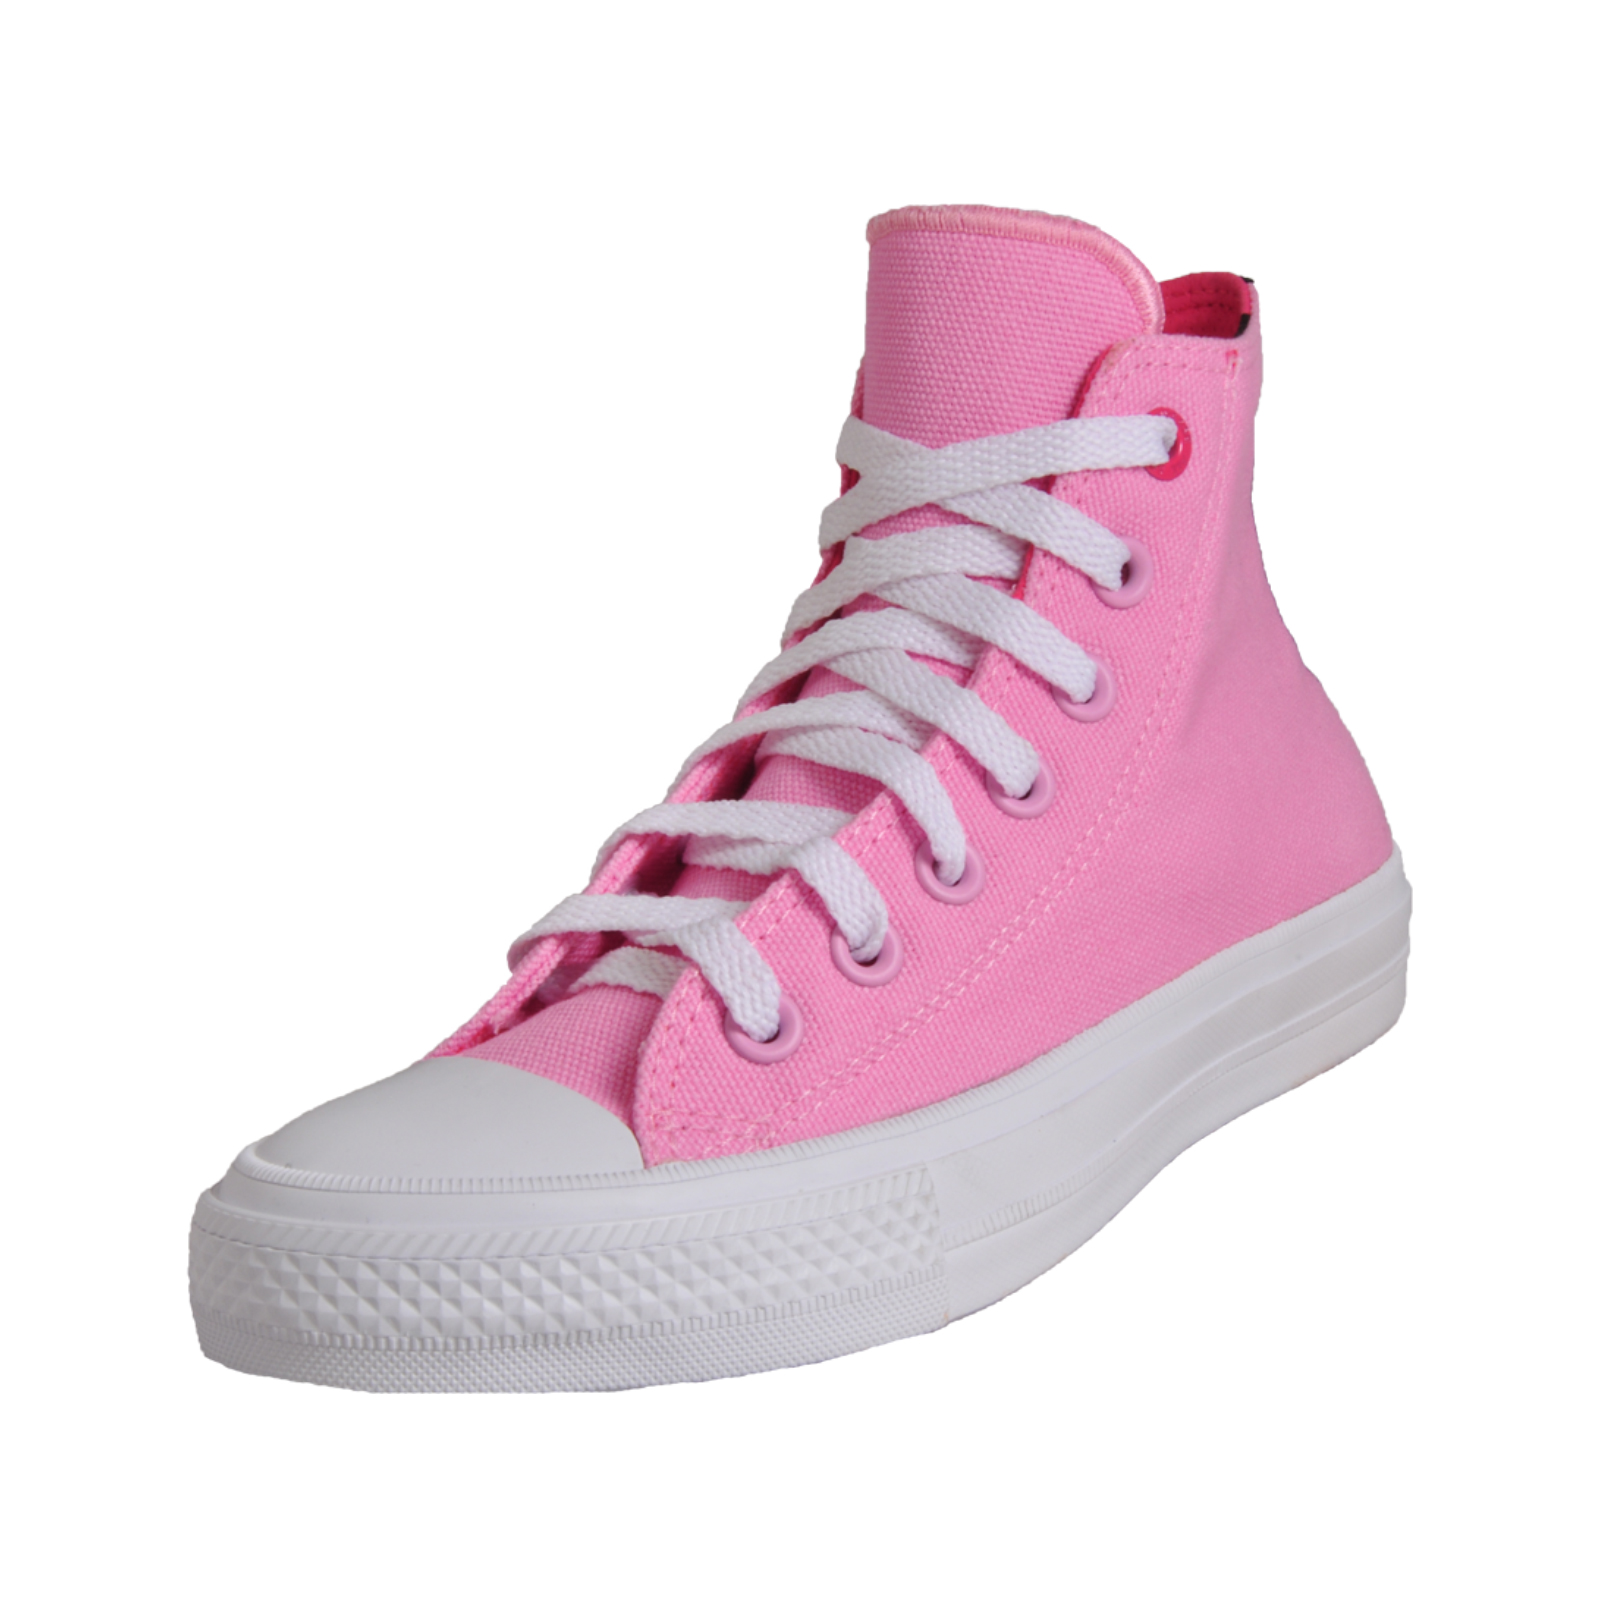 017cfeac342a99 Converse Chuck Taylor All Star Hi Women s Girls Classic Casual Plimsol Trainers  Pink